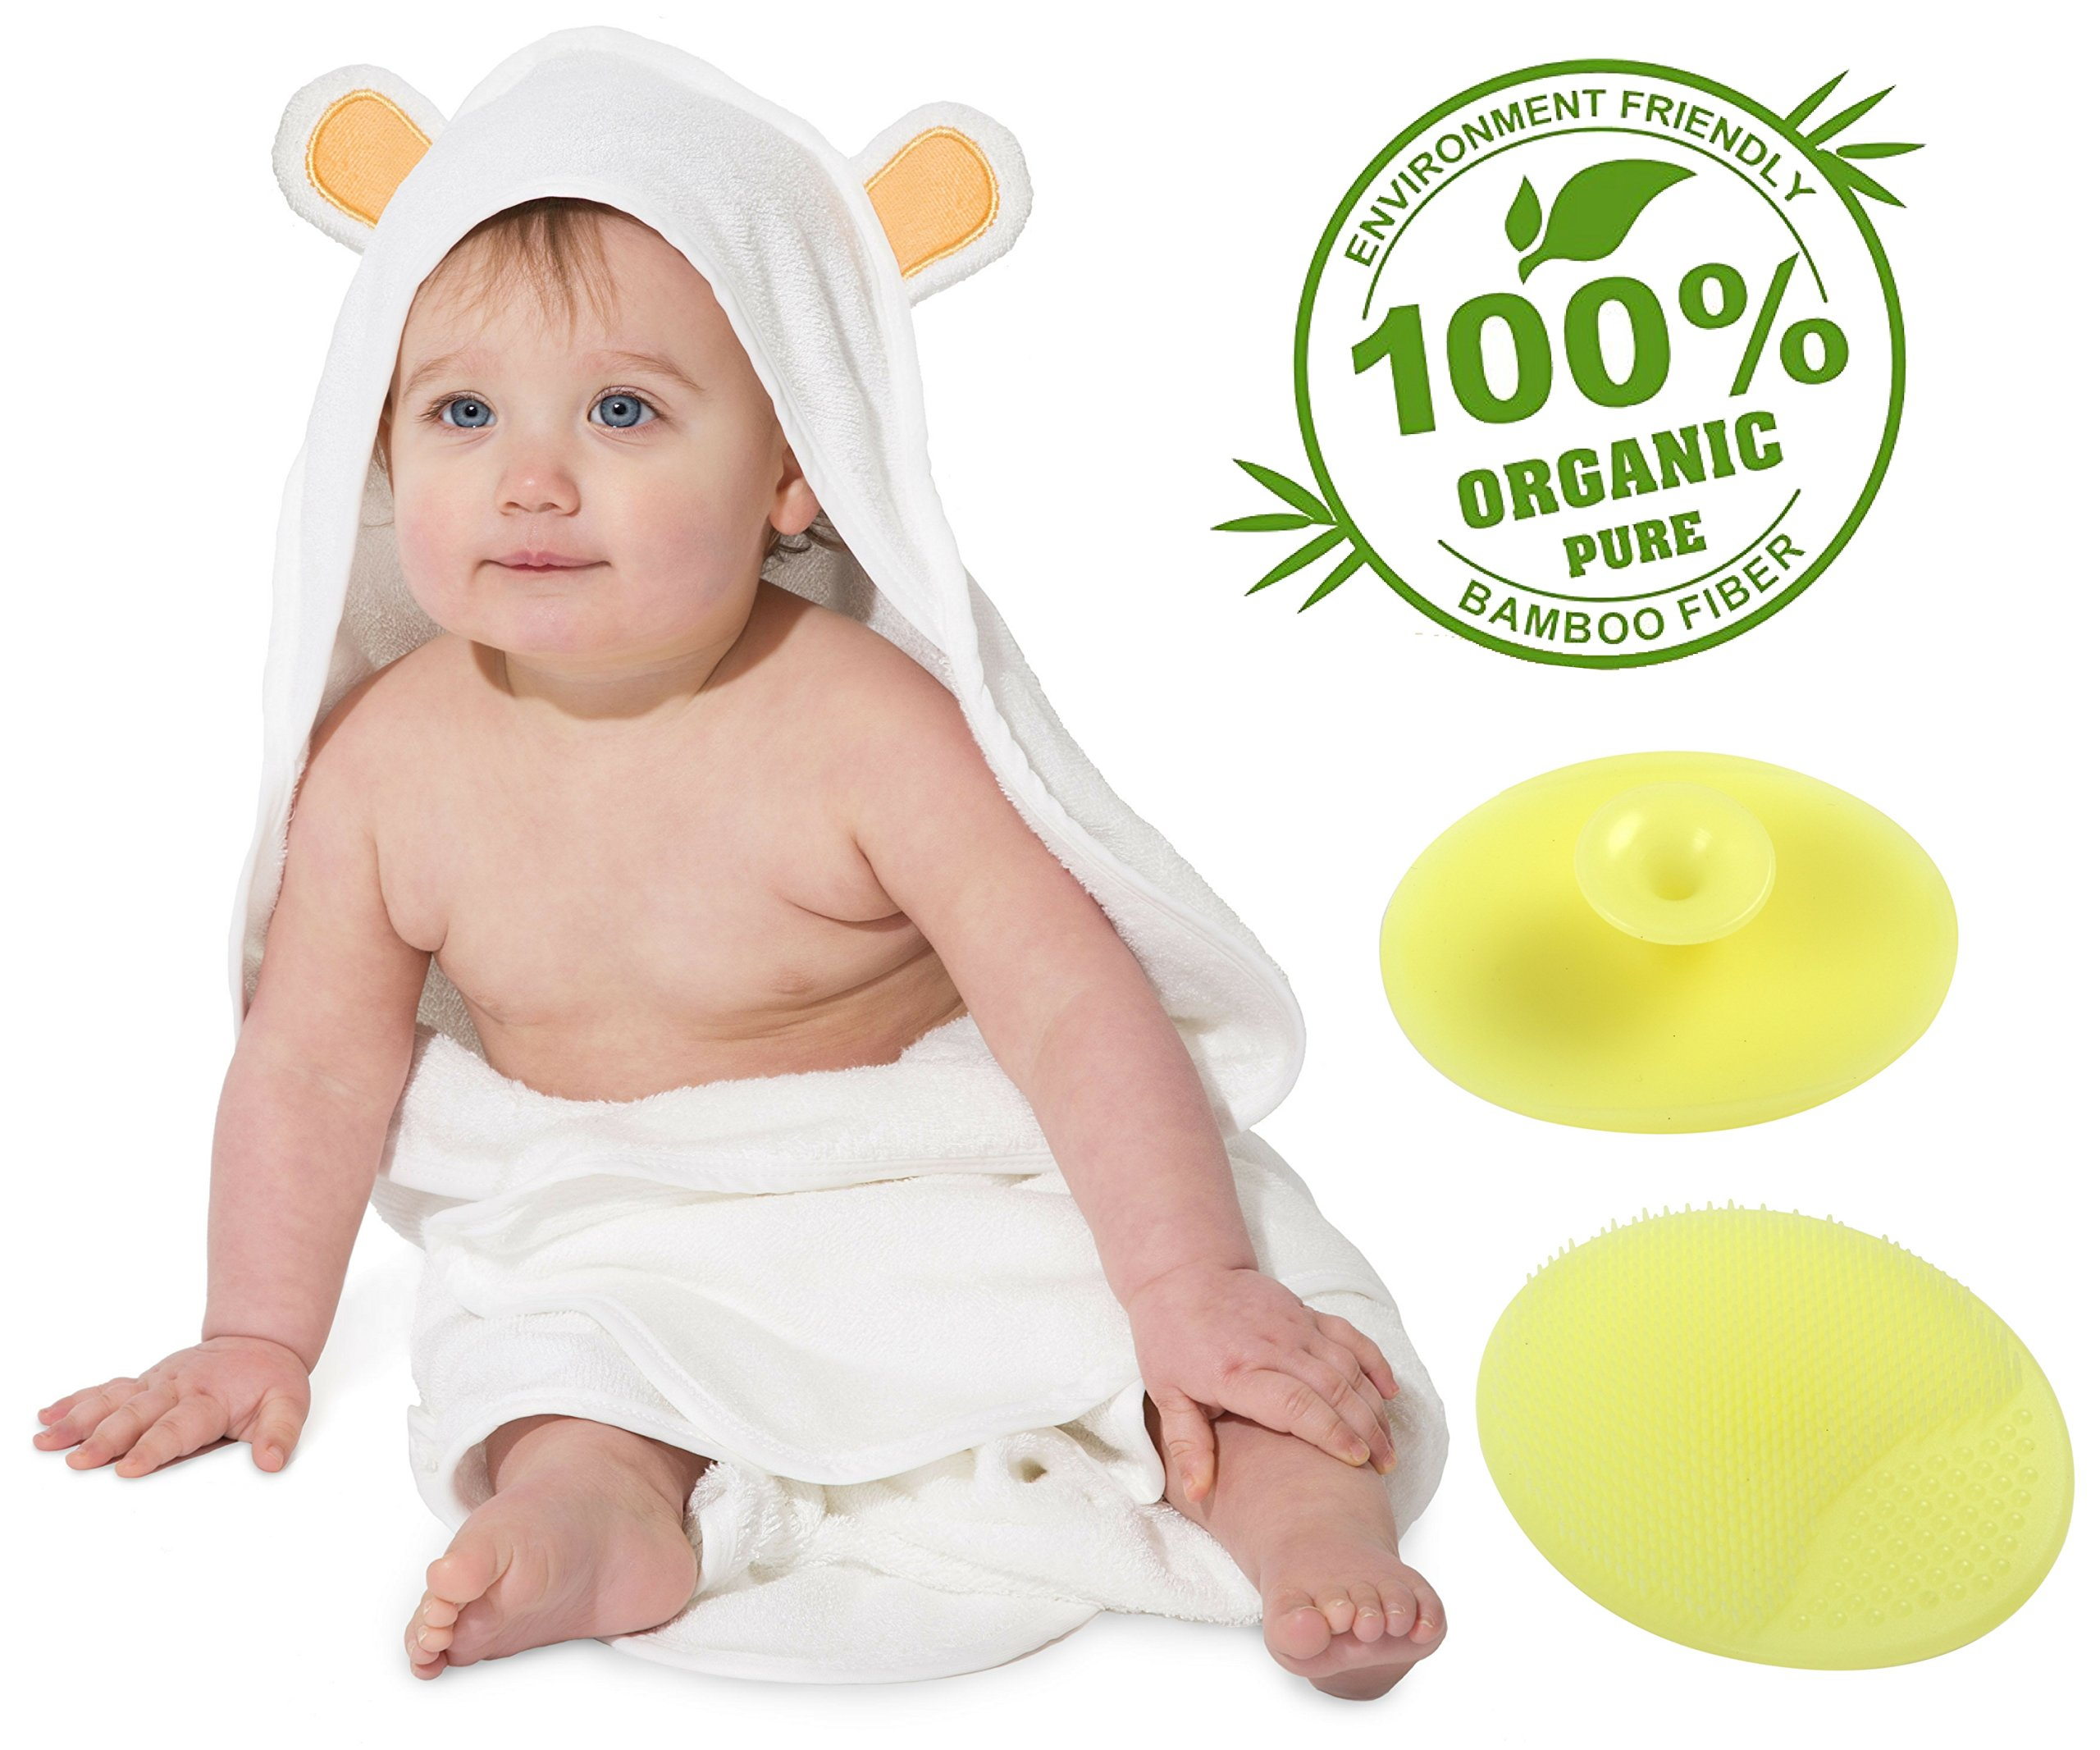 Baby Hooded Towel Organic Bamboo With Silicone Hair & Scalp Brush | Hypoallergenic, Antibacterial, Comfy, Soft, Plush, Oversized 35x35'', Absorbent | For Girls, Boys, Baby Showers, Beach, Bath & More